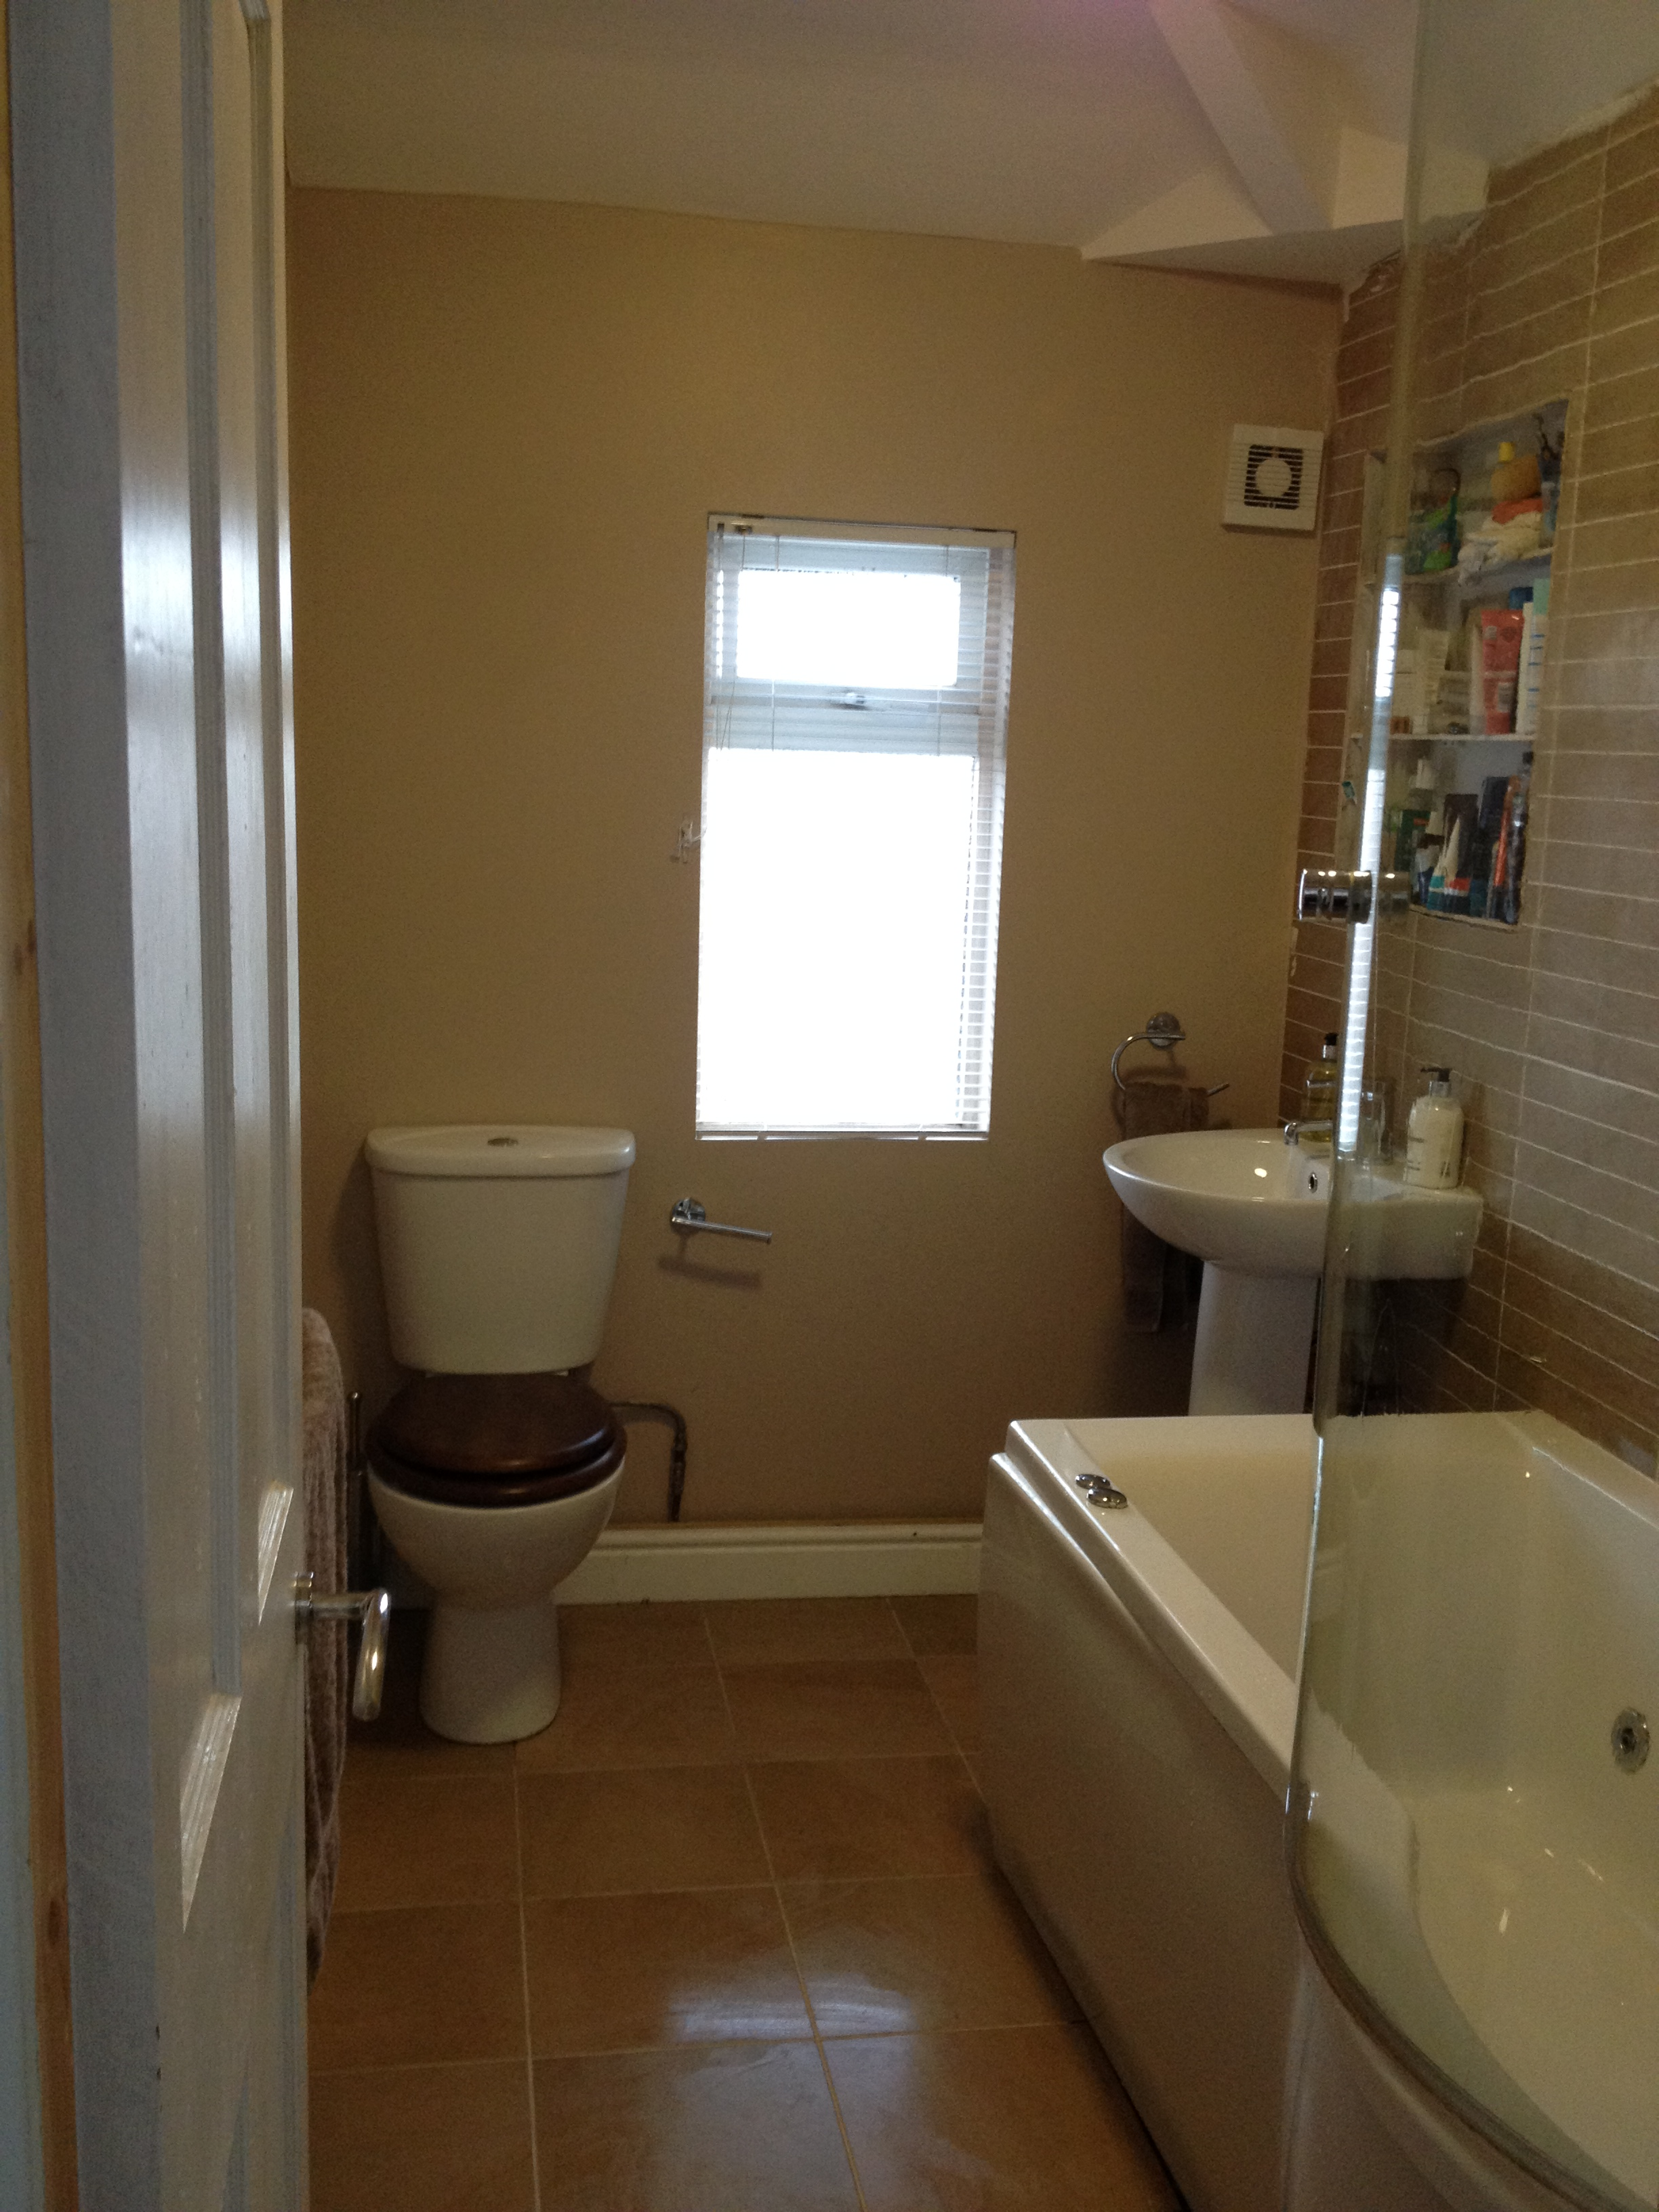 Bathrooms - Bathroom & wet room installations and tiling